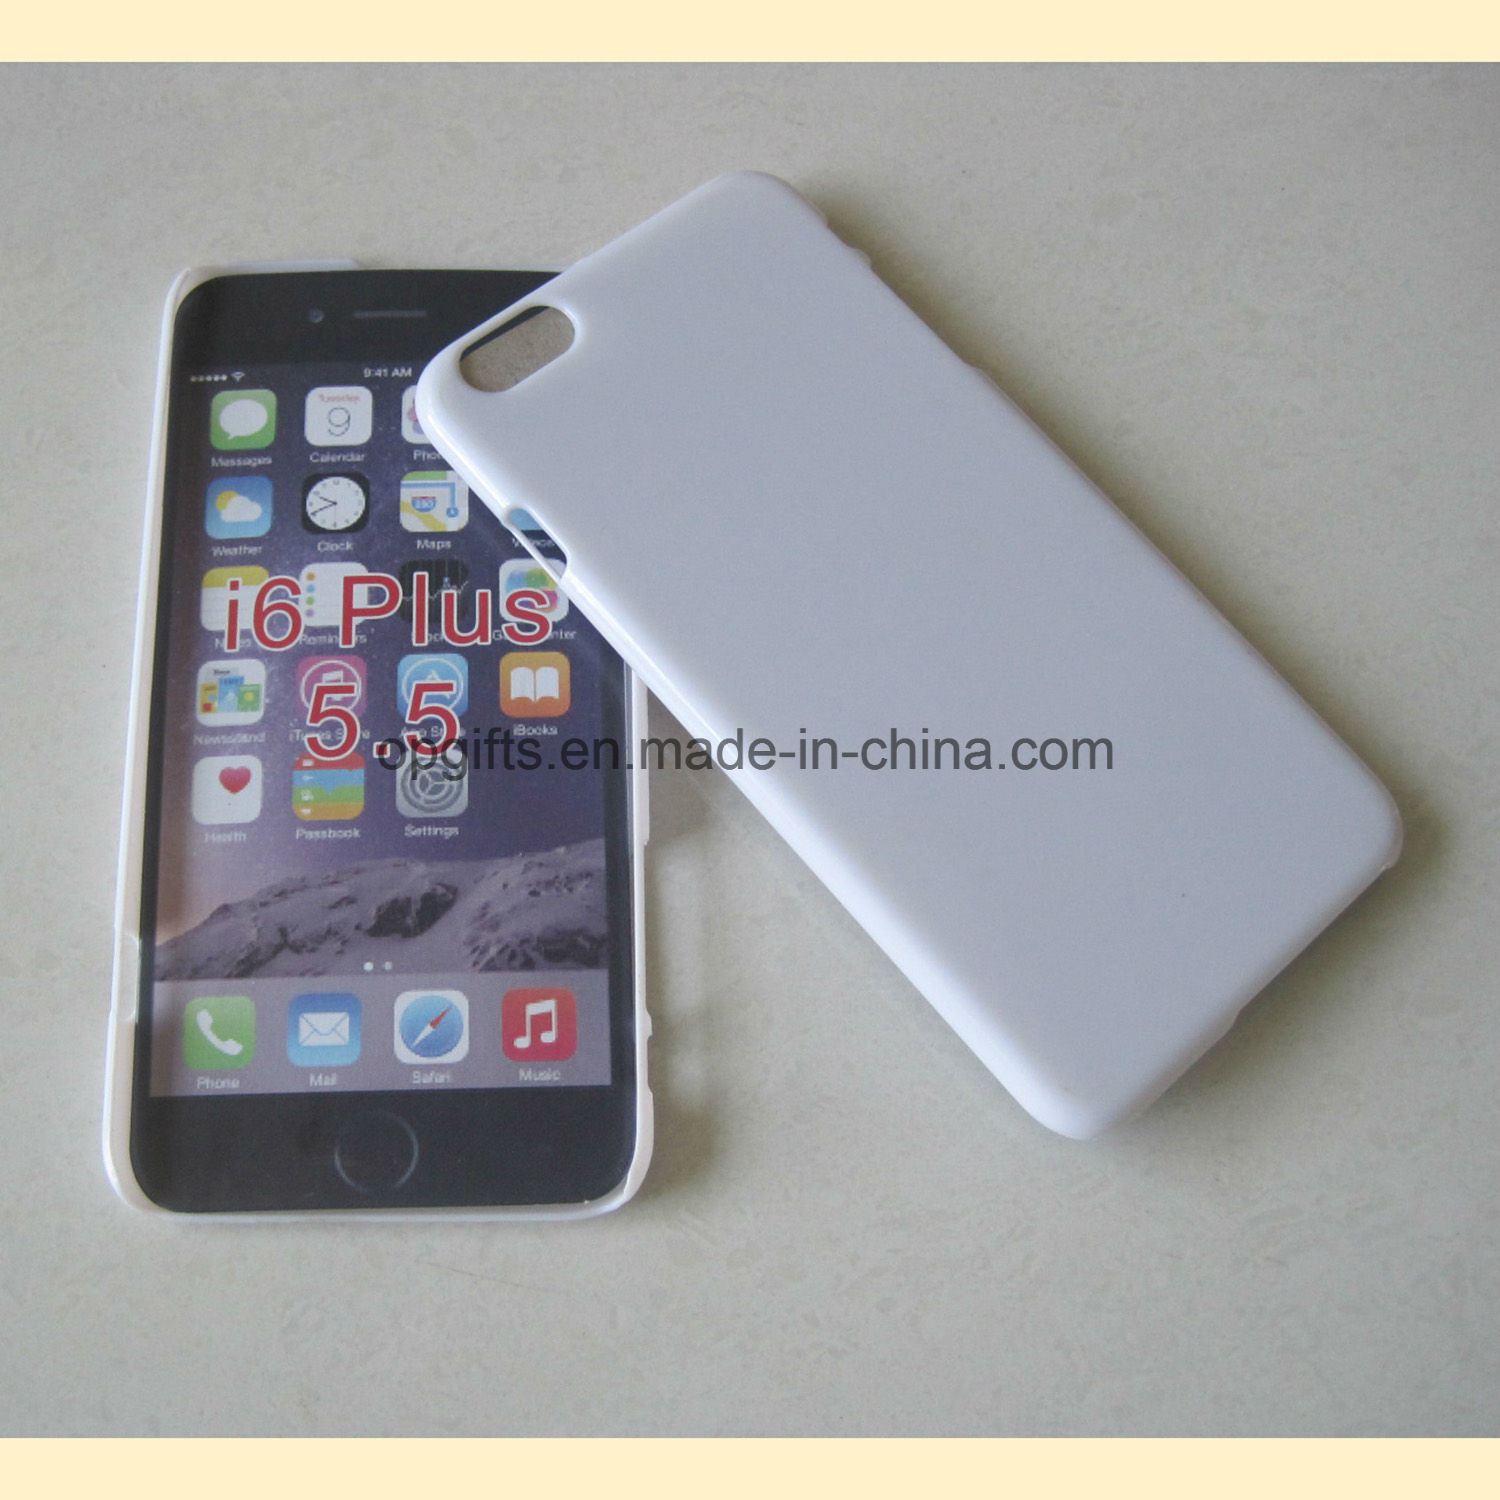 Mobile Shell or Mobile Case for iPhone 4/ iPhone5 Shell